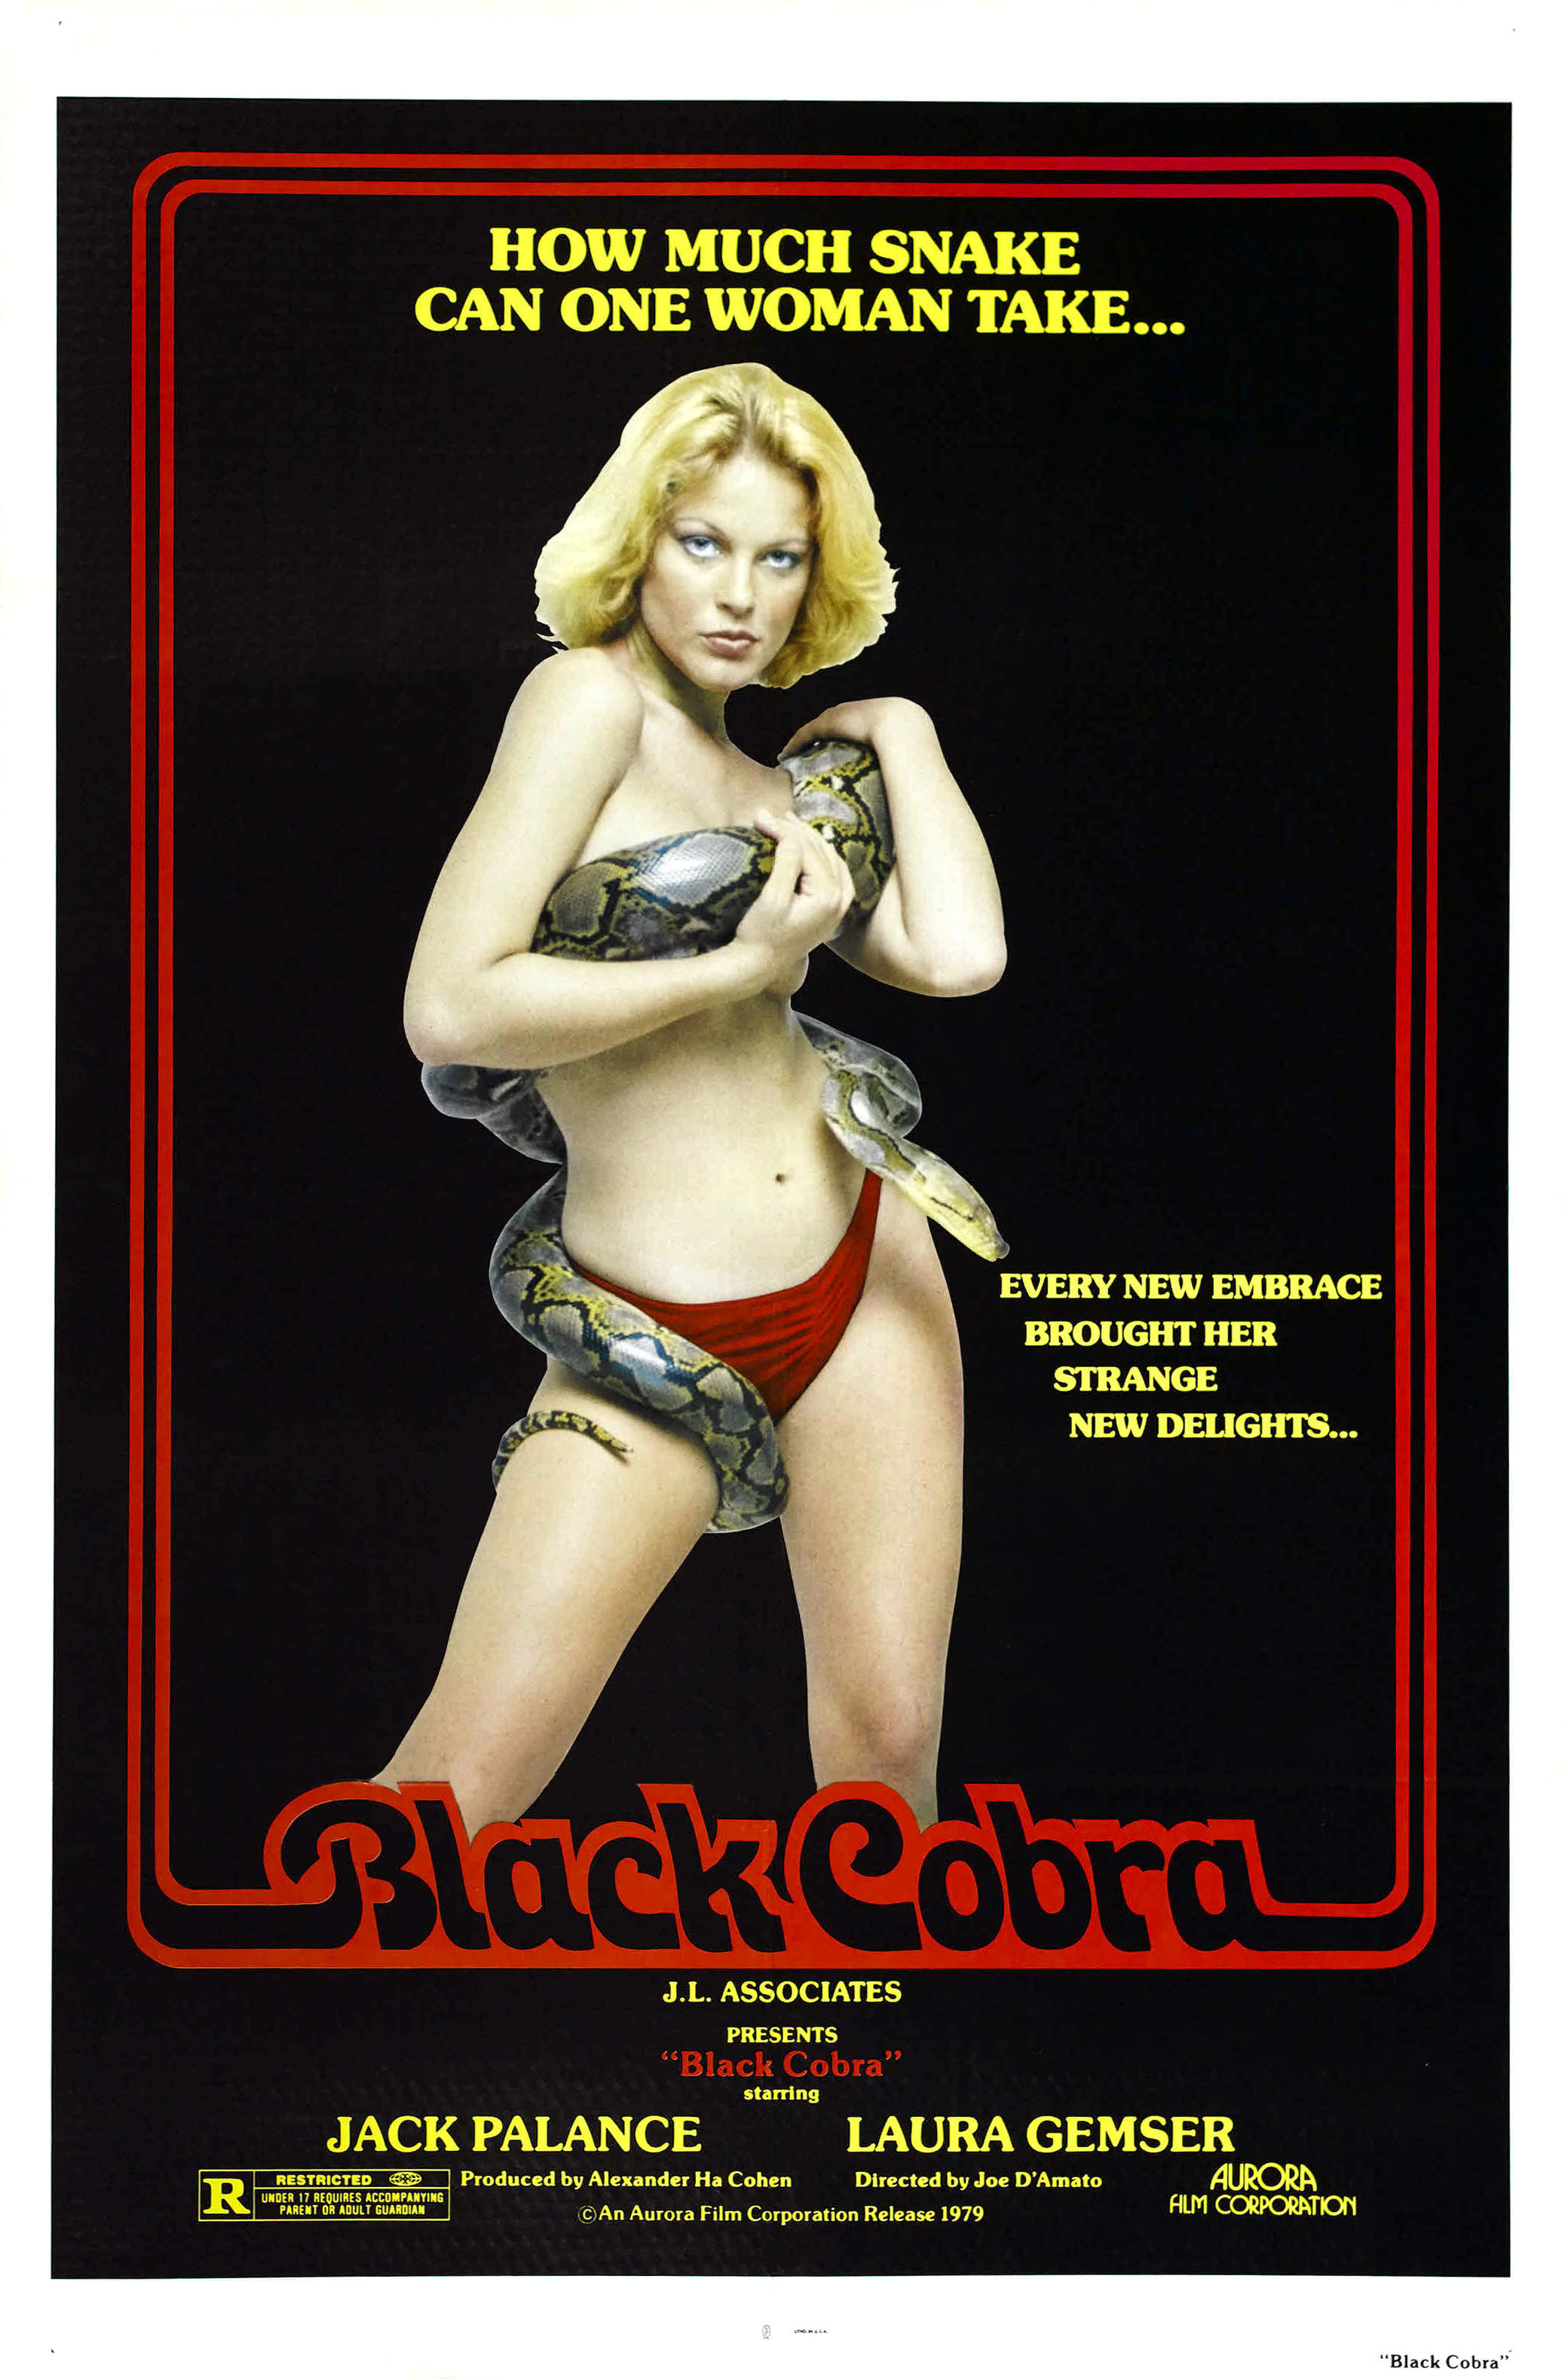 SassyFlix | Black Cobra aka Eva nera aka Emmanuelle and the Deadly Black Cobra